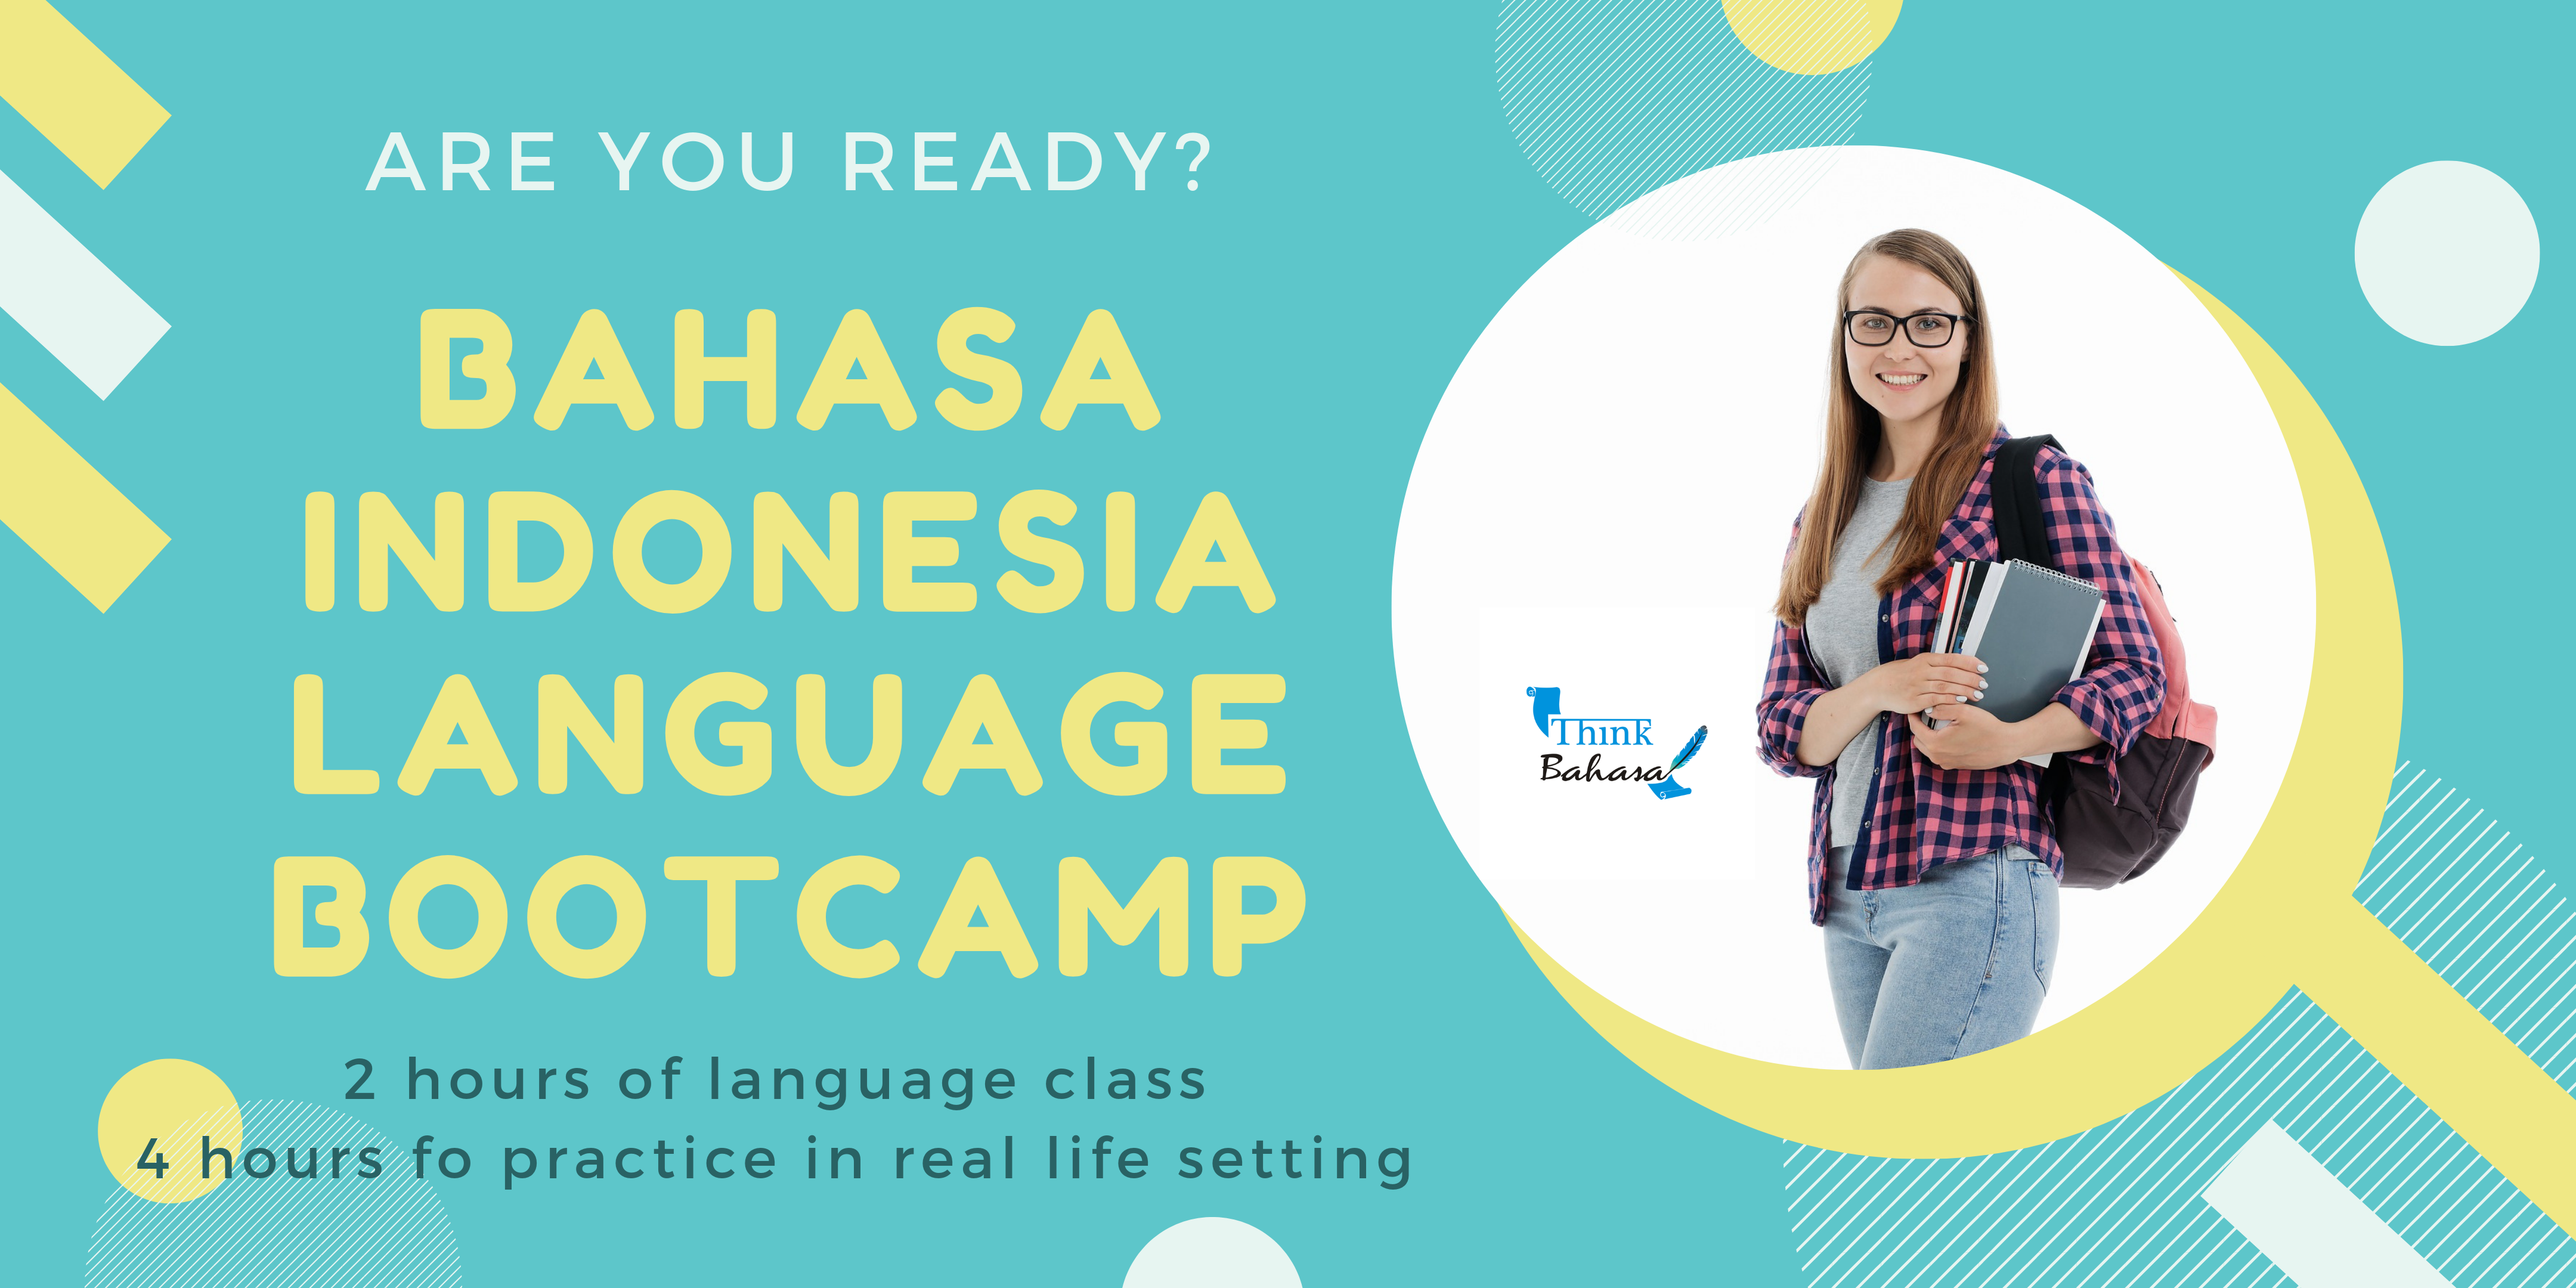 Bahasa Indonesia Language Bootcamp for Beginners